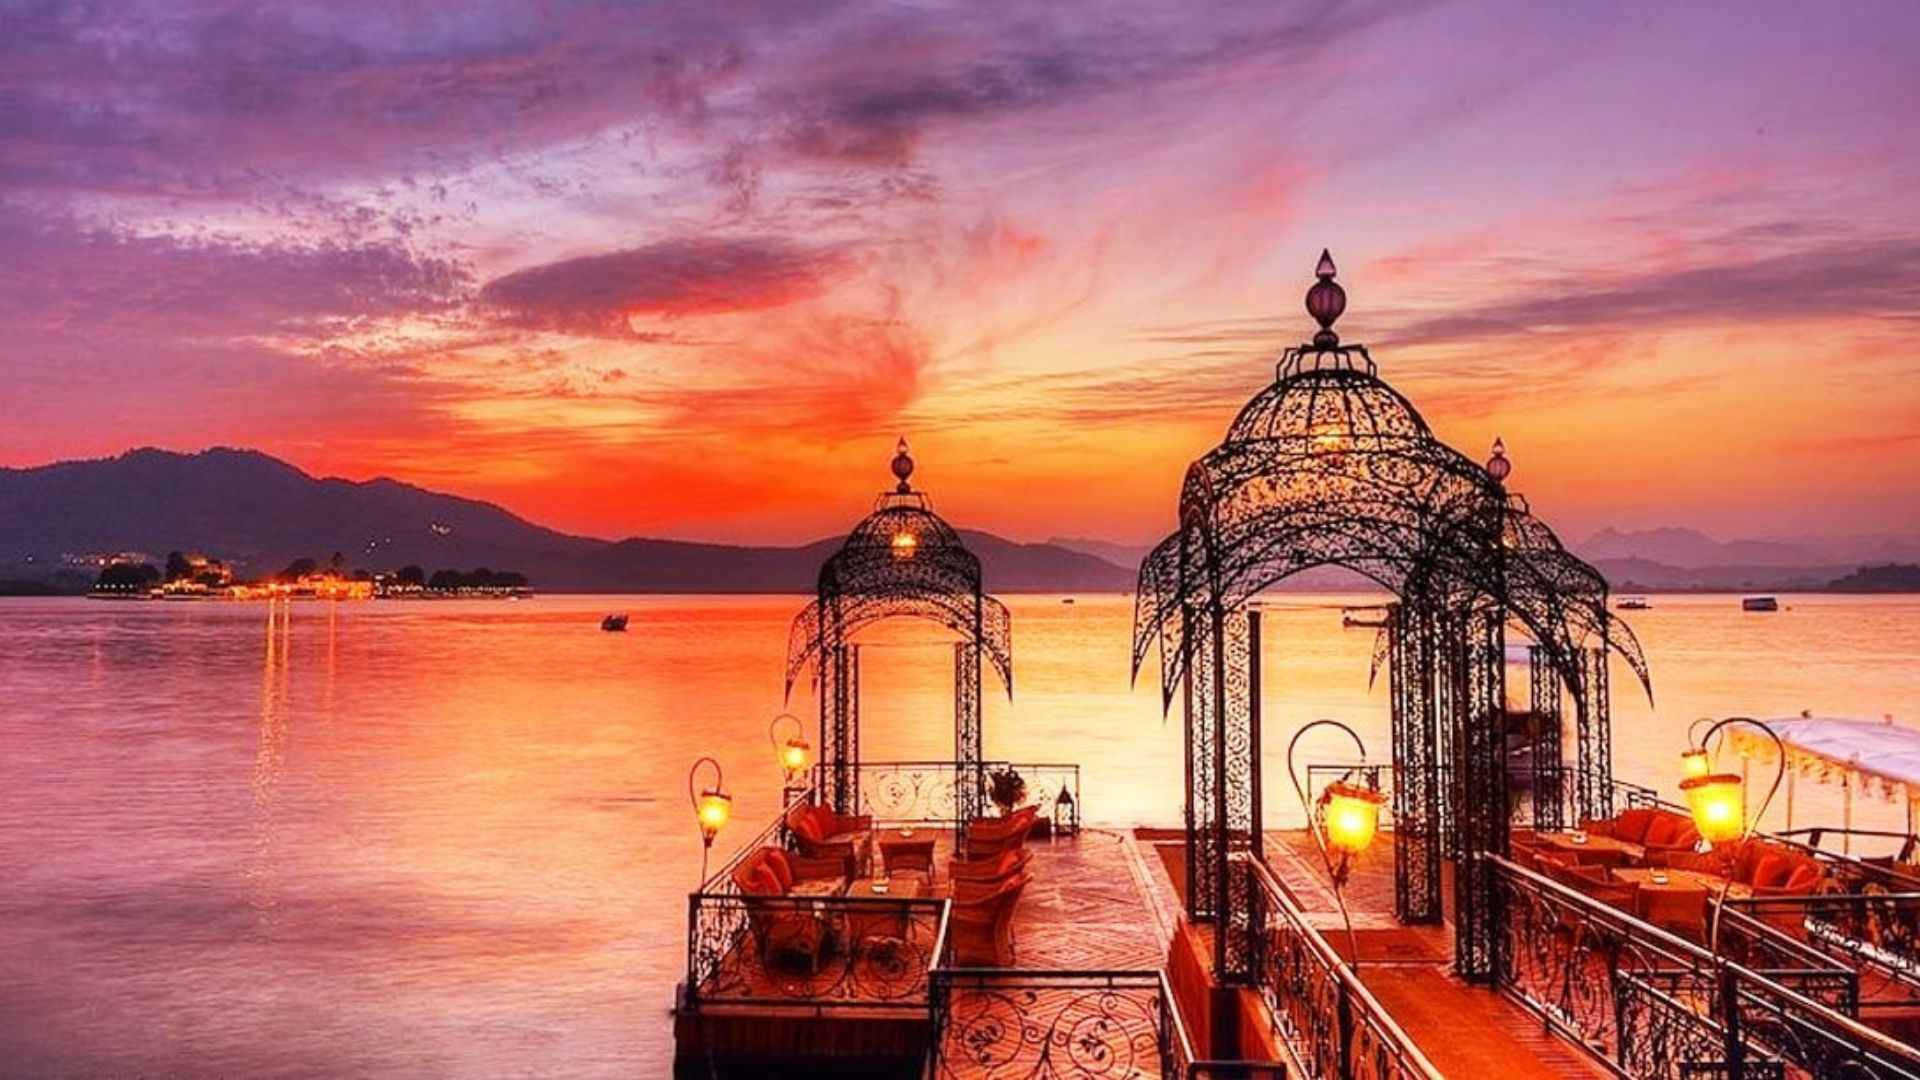 Lake city the crush of Travel Lovers in 2020 Udaipur